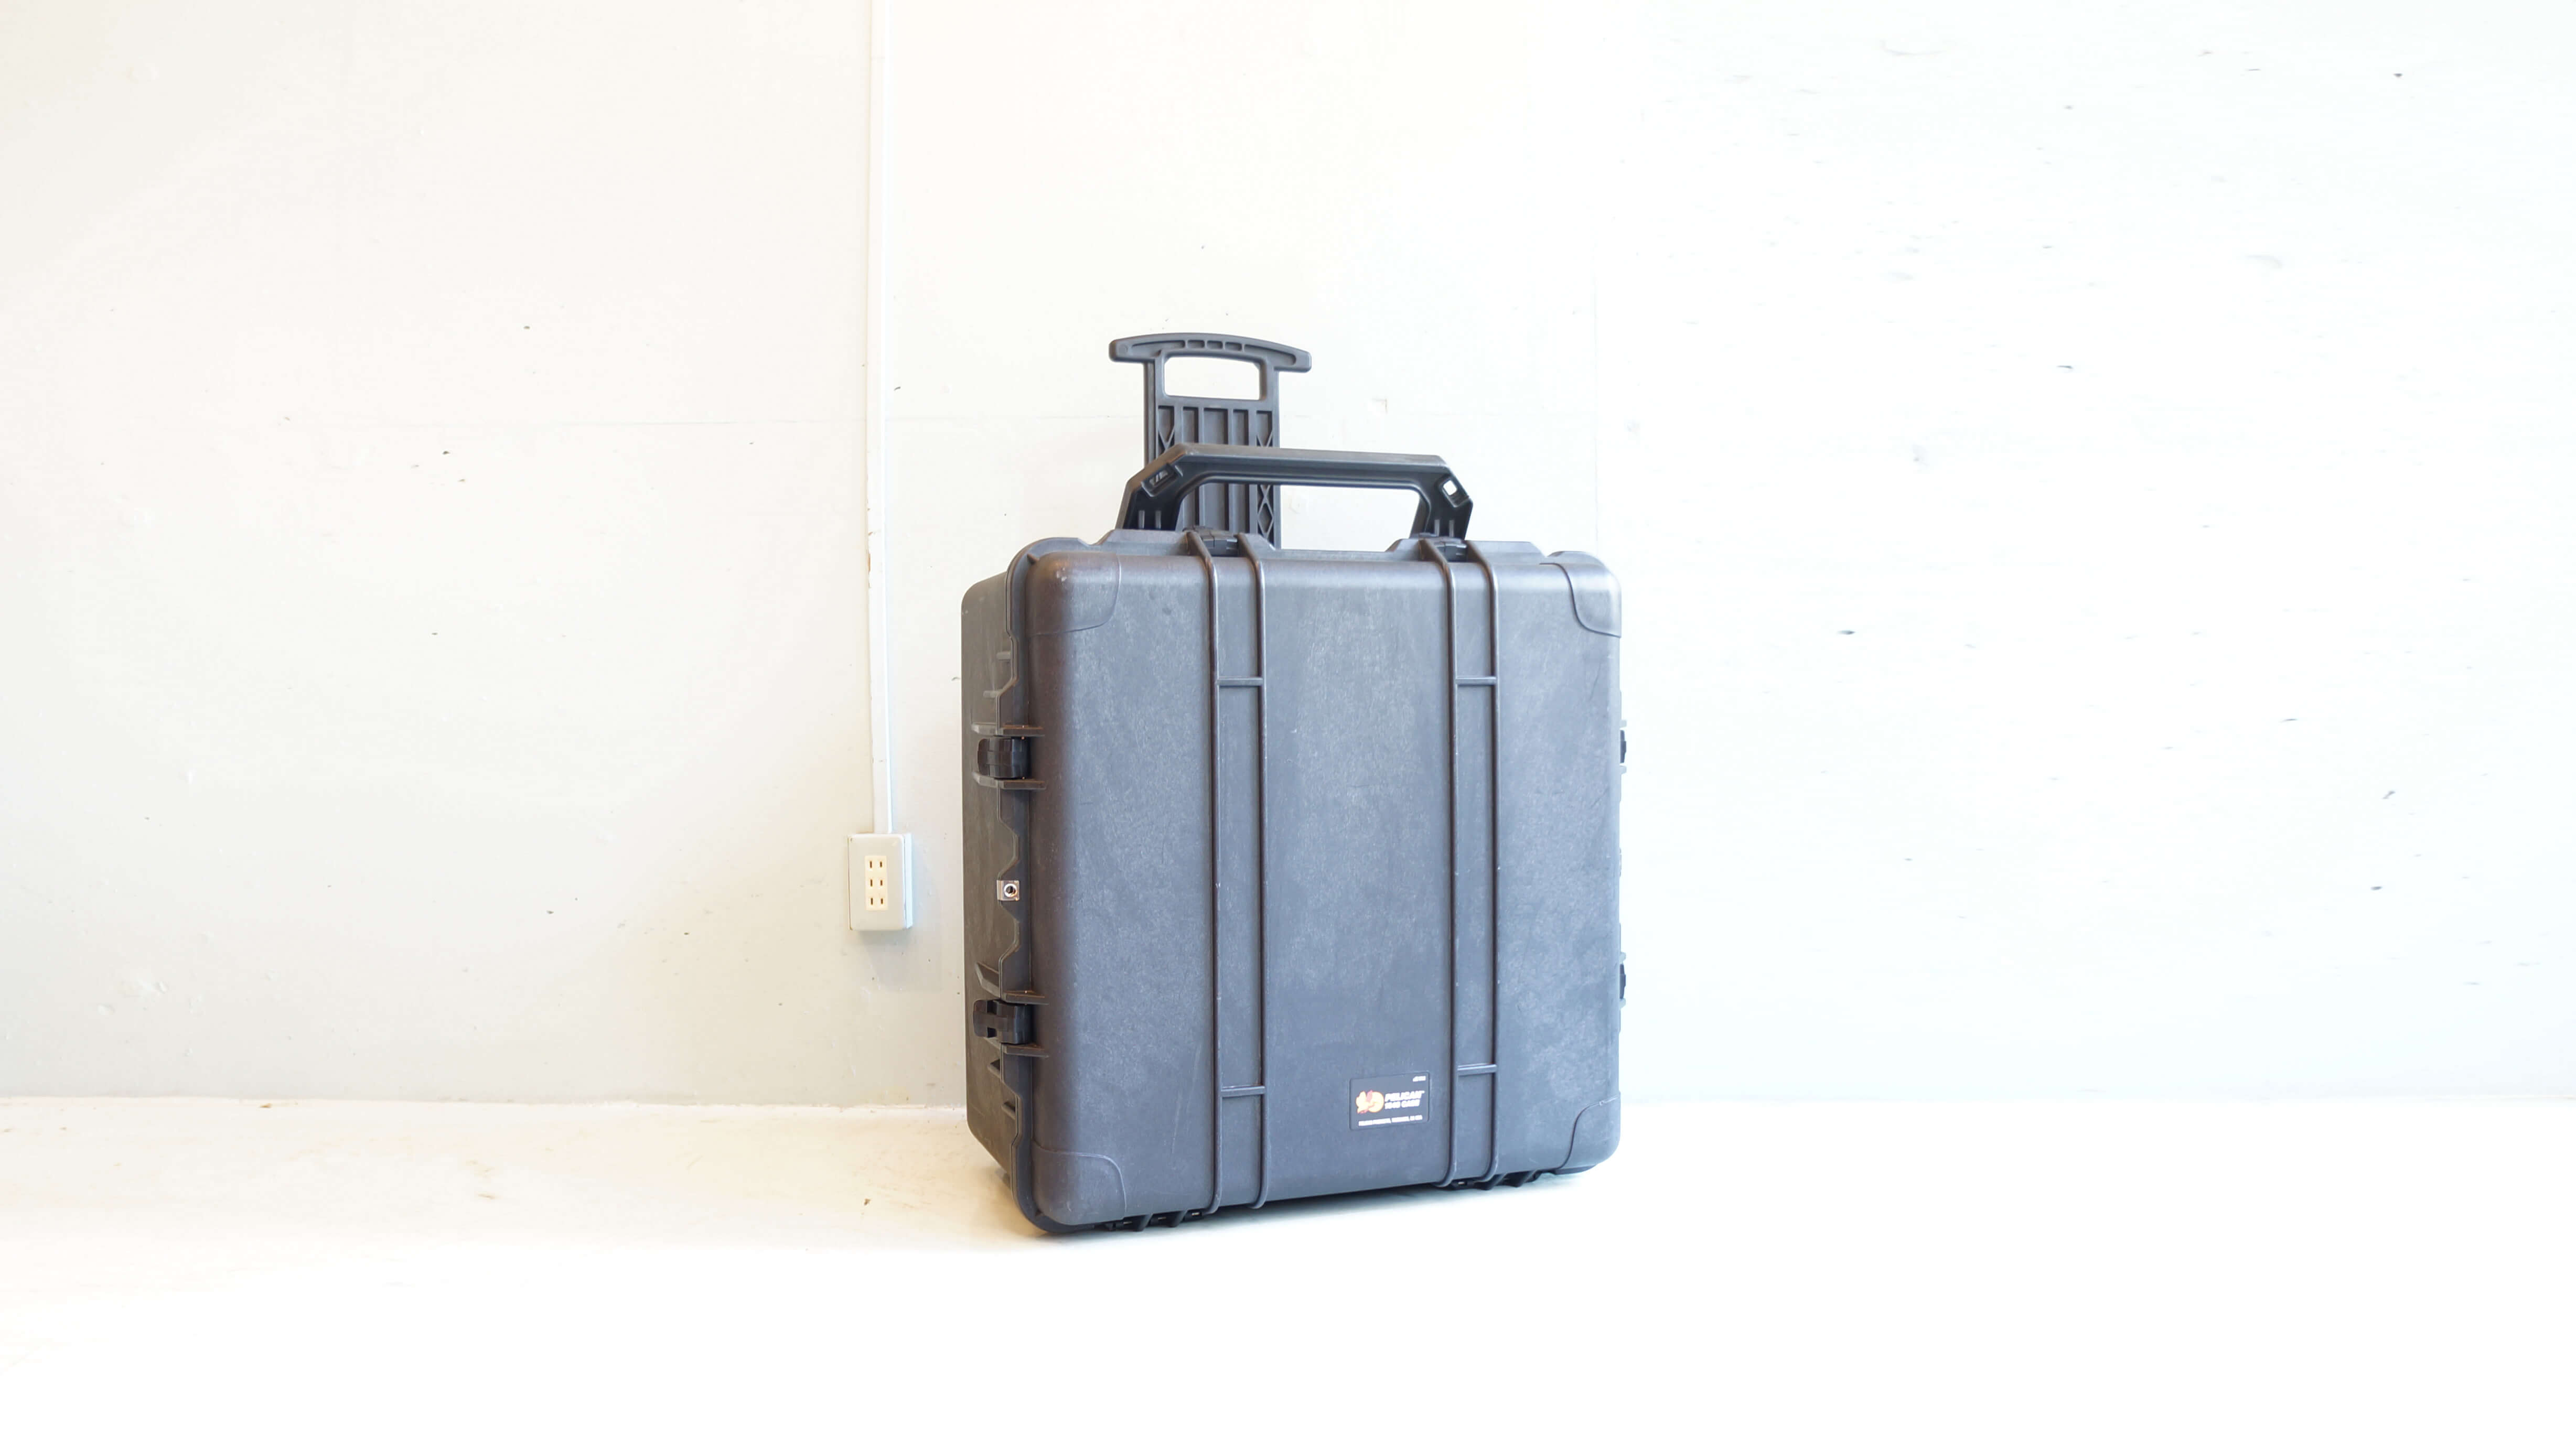 PELICAN TRANSPORT CASE 1640 made in USA / ペリカン トラスポート ケース 1640 アメリカ製